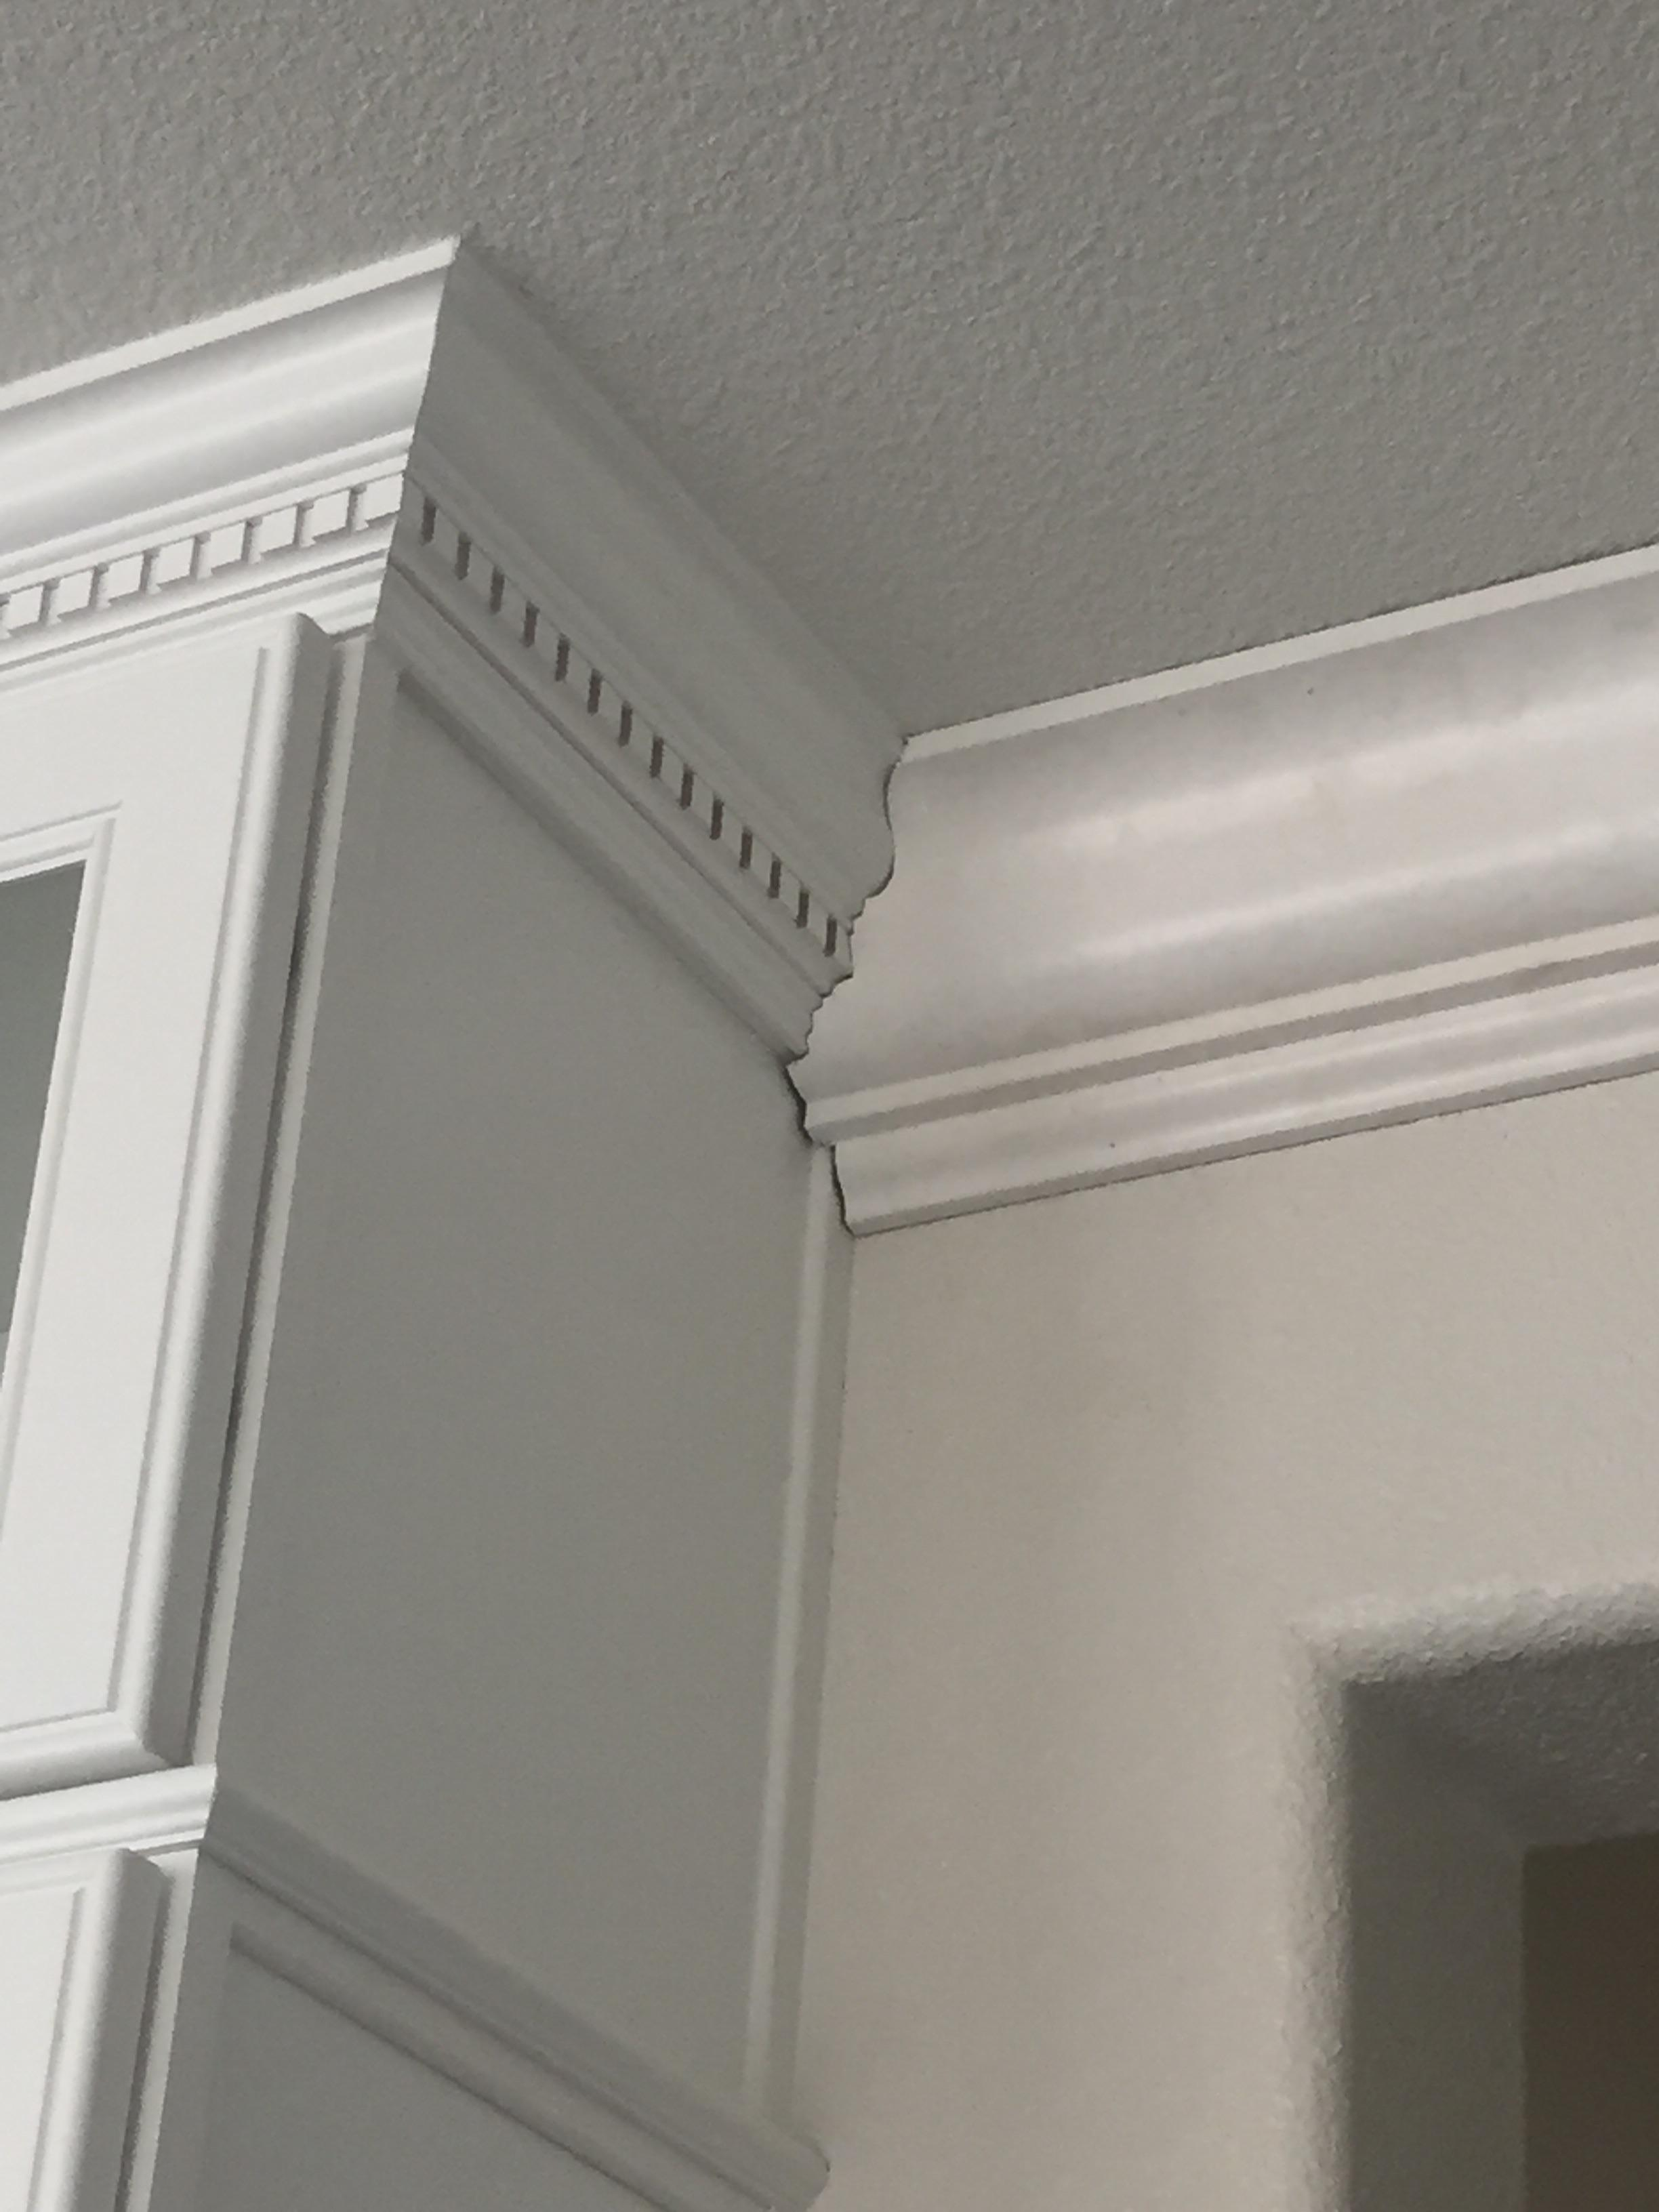 Joining 2 different crown moldings-image_1441998351614.jpg